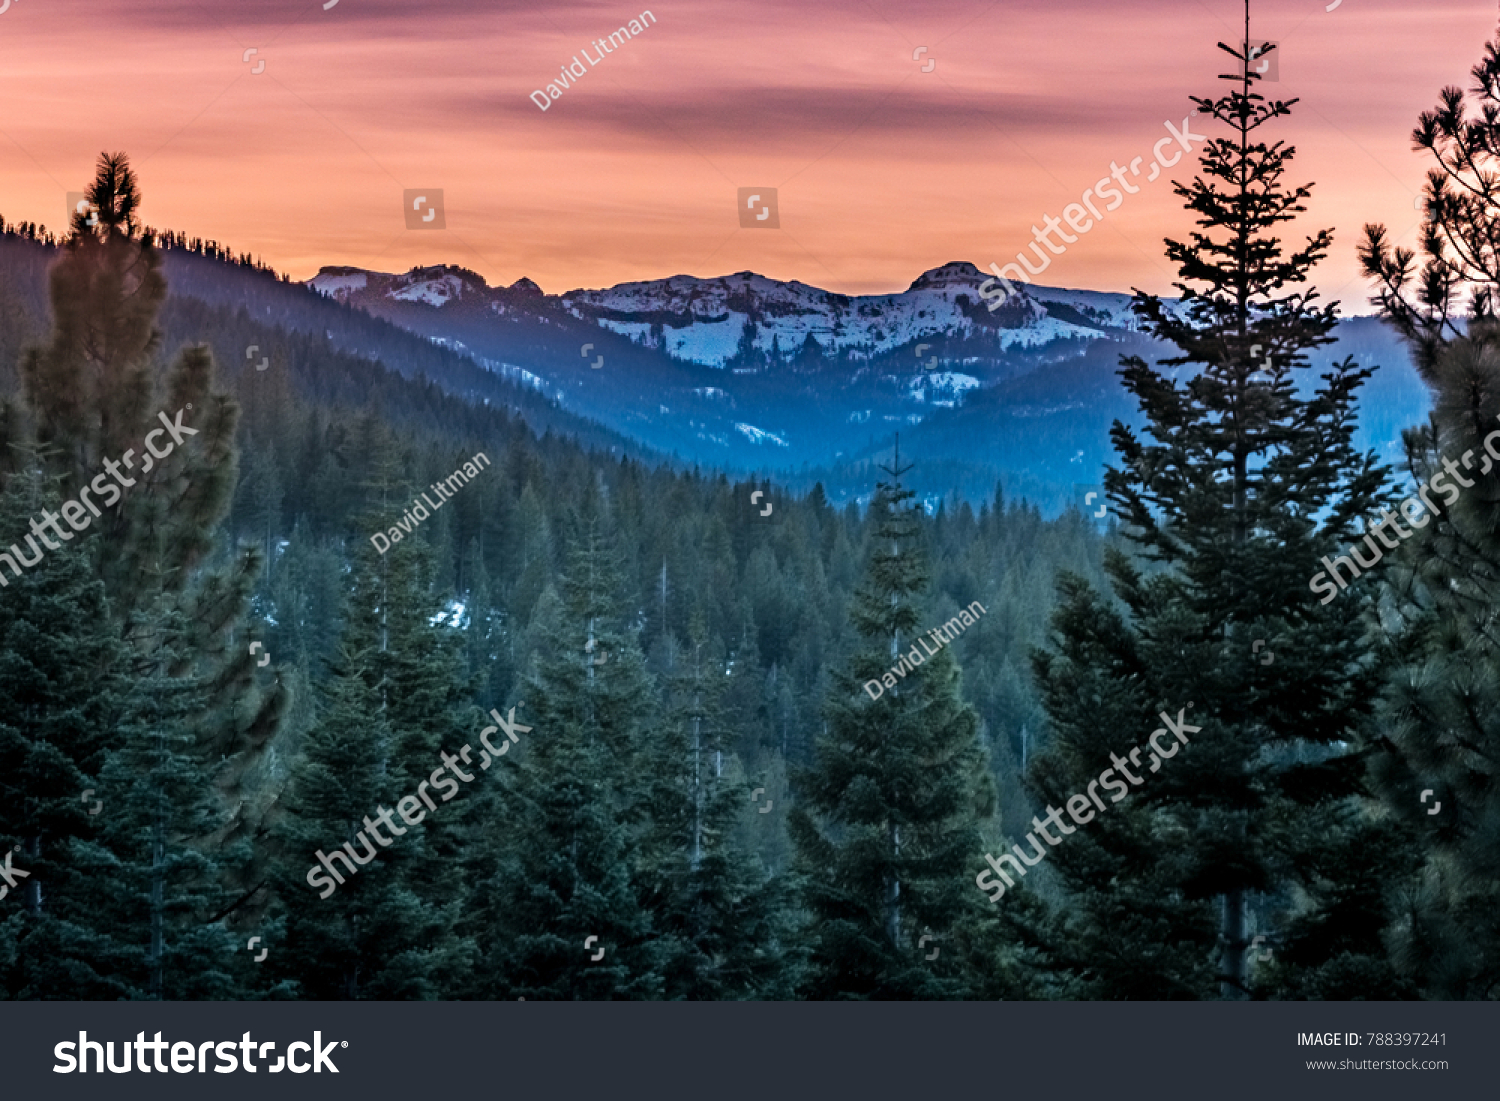 Sunset in the Sierra Nevada Mountain range in early winter in Truckee, California, near Lake Tahoe and not far from Reno, Nevada, looking up toward Donner Summit (Donner Pass).